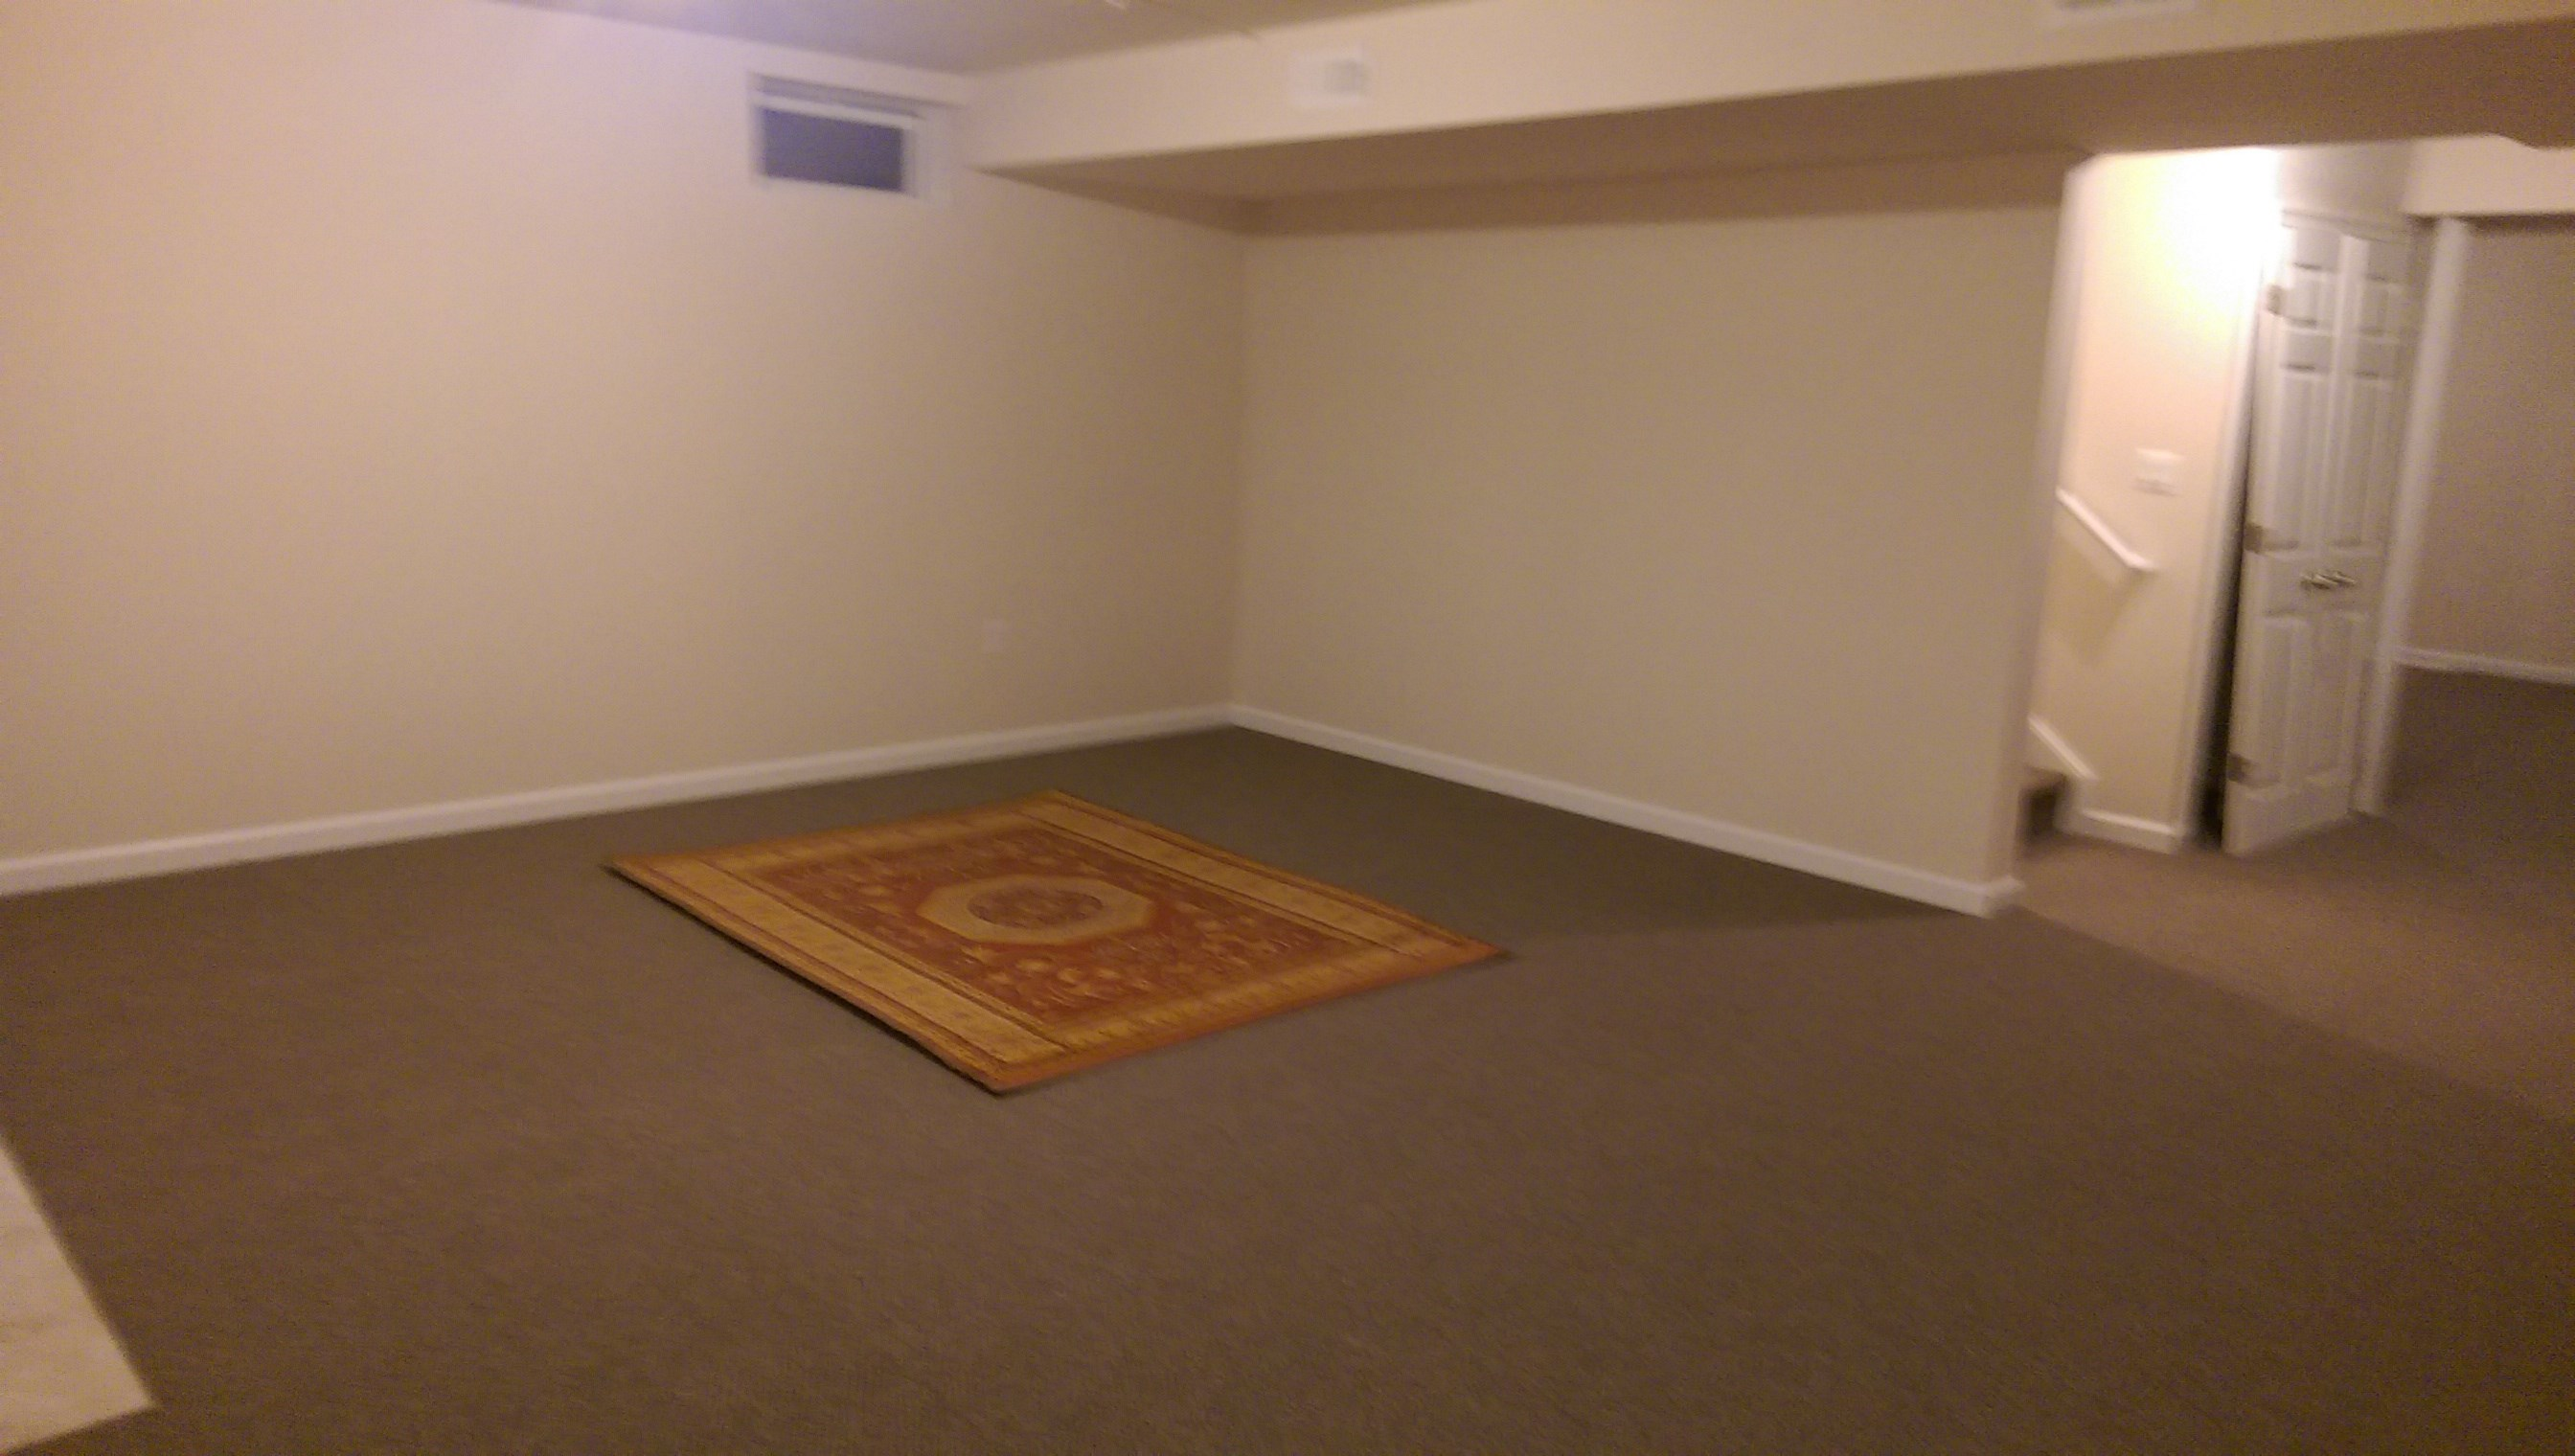 Basement Apartment For Rent | 1 BHK Basement Apartment in Ellicott City, MD  | 1224068 - Sulekha Rentals